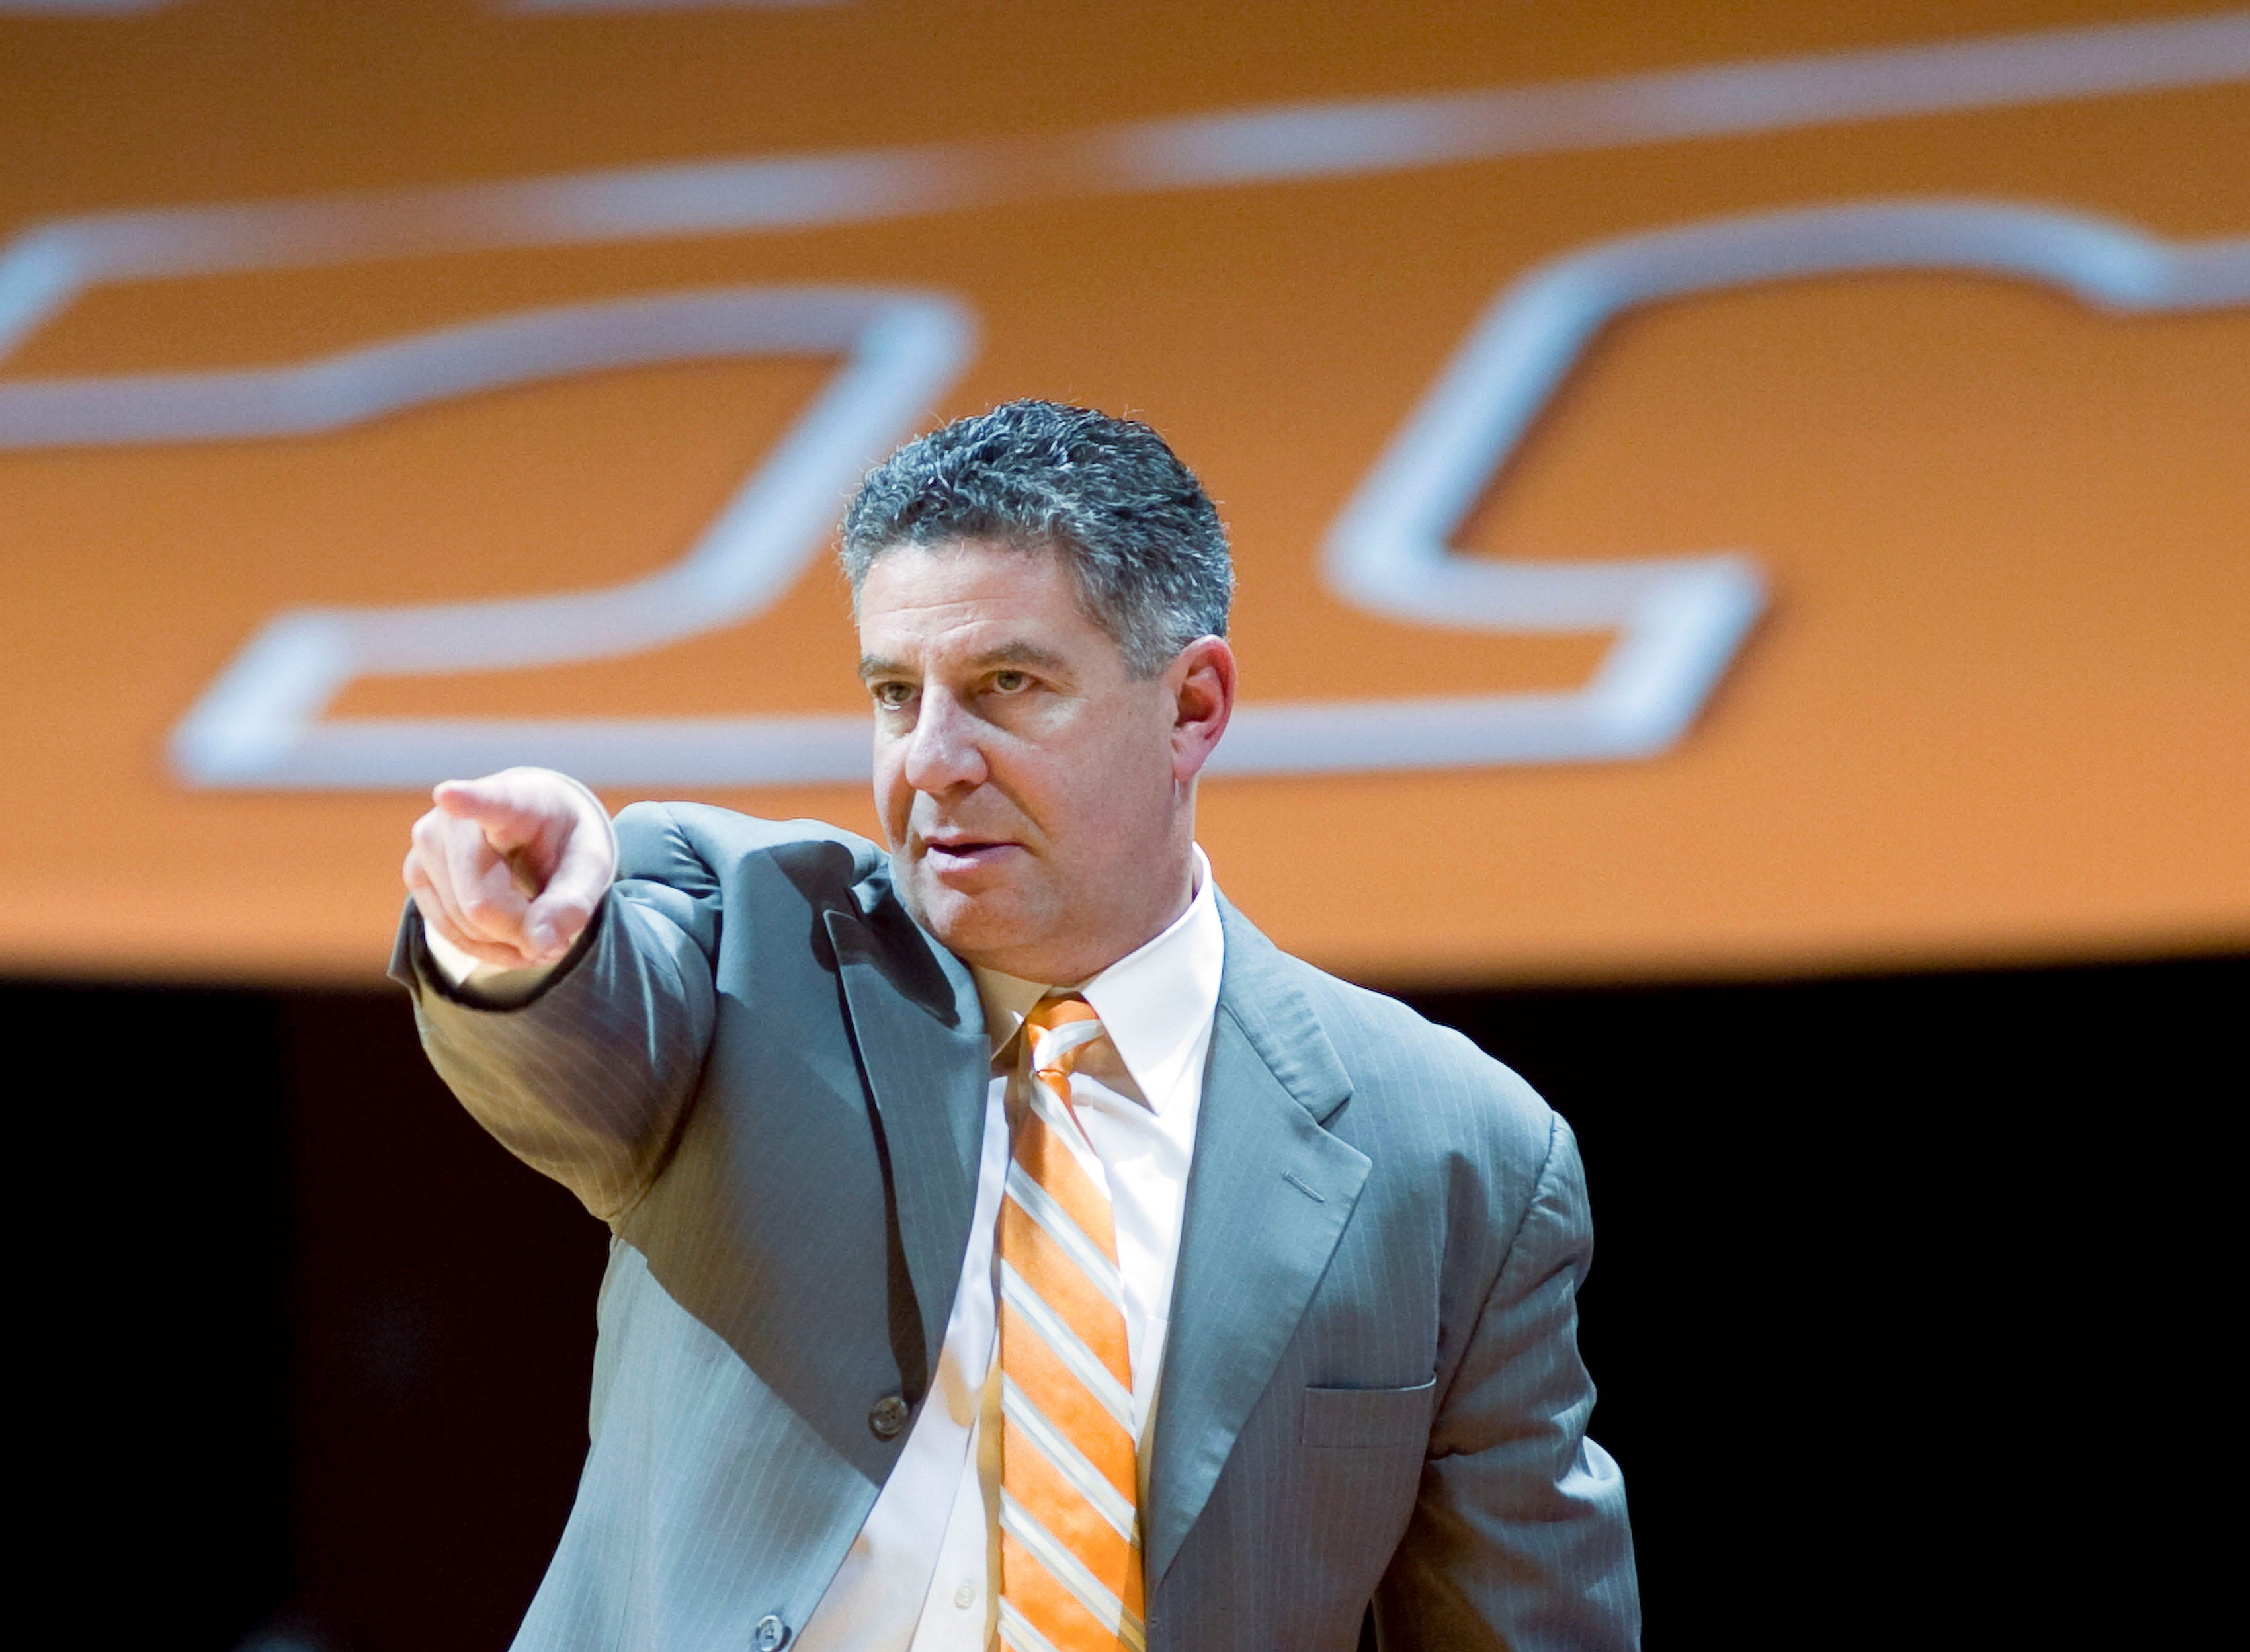 Tennessee coach Bruce Pearl sends out directions to his team during the game against UT Martin at Thompson-Boling Arena on Wednesday, December 29, 2010.